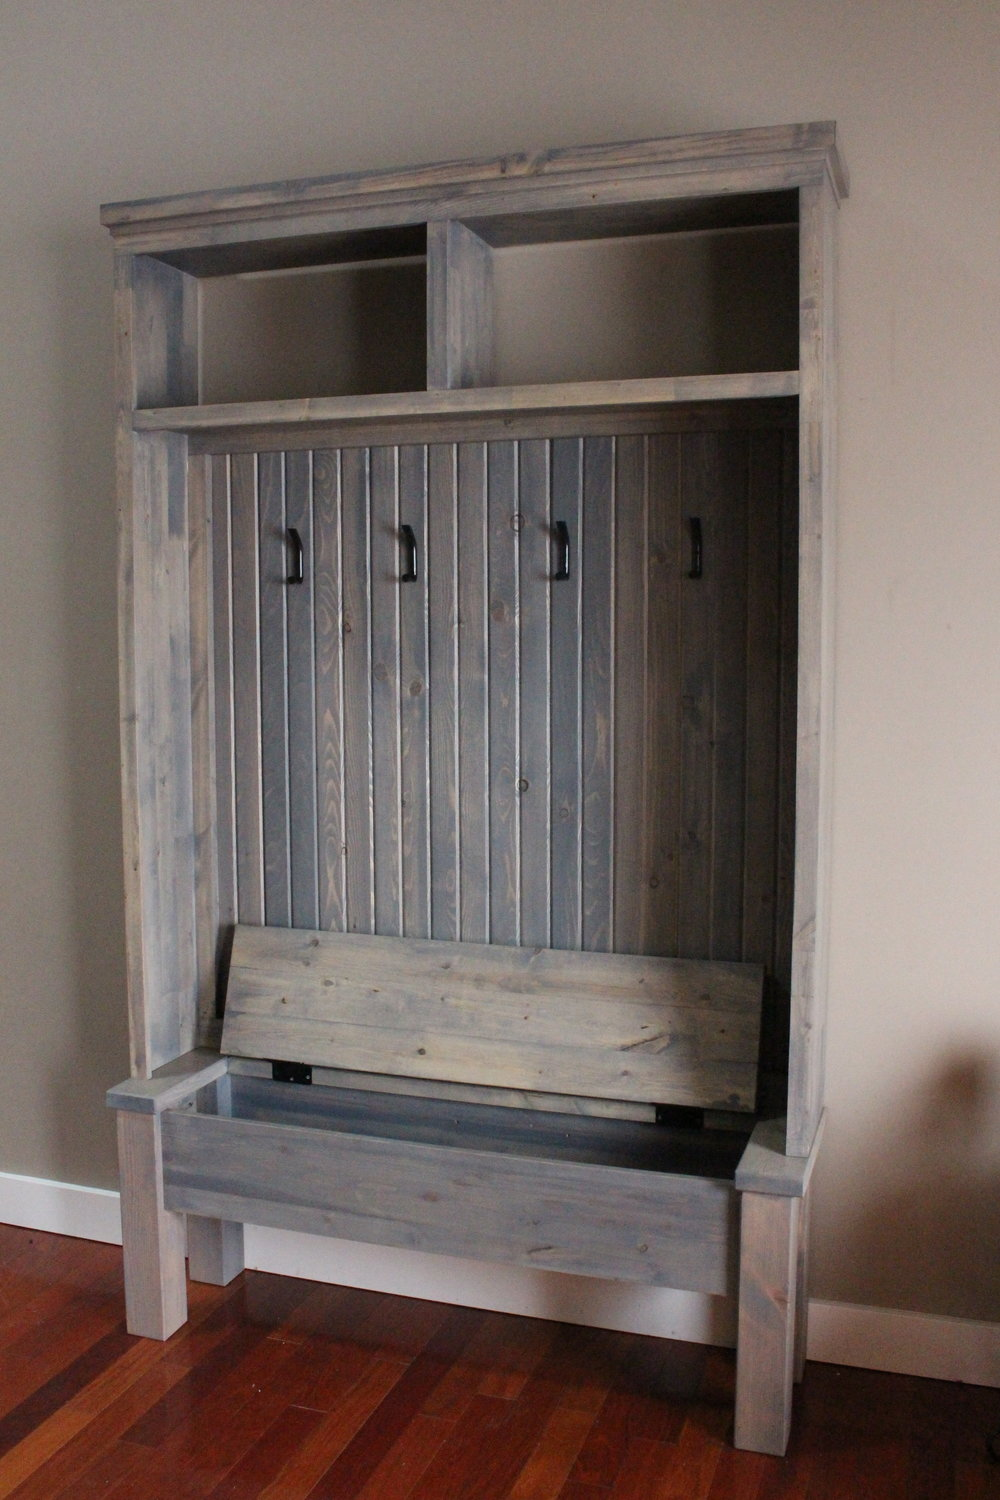 Simple and elegant storage -